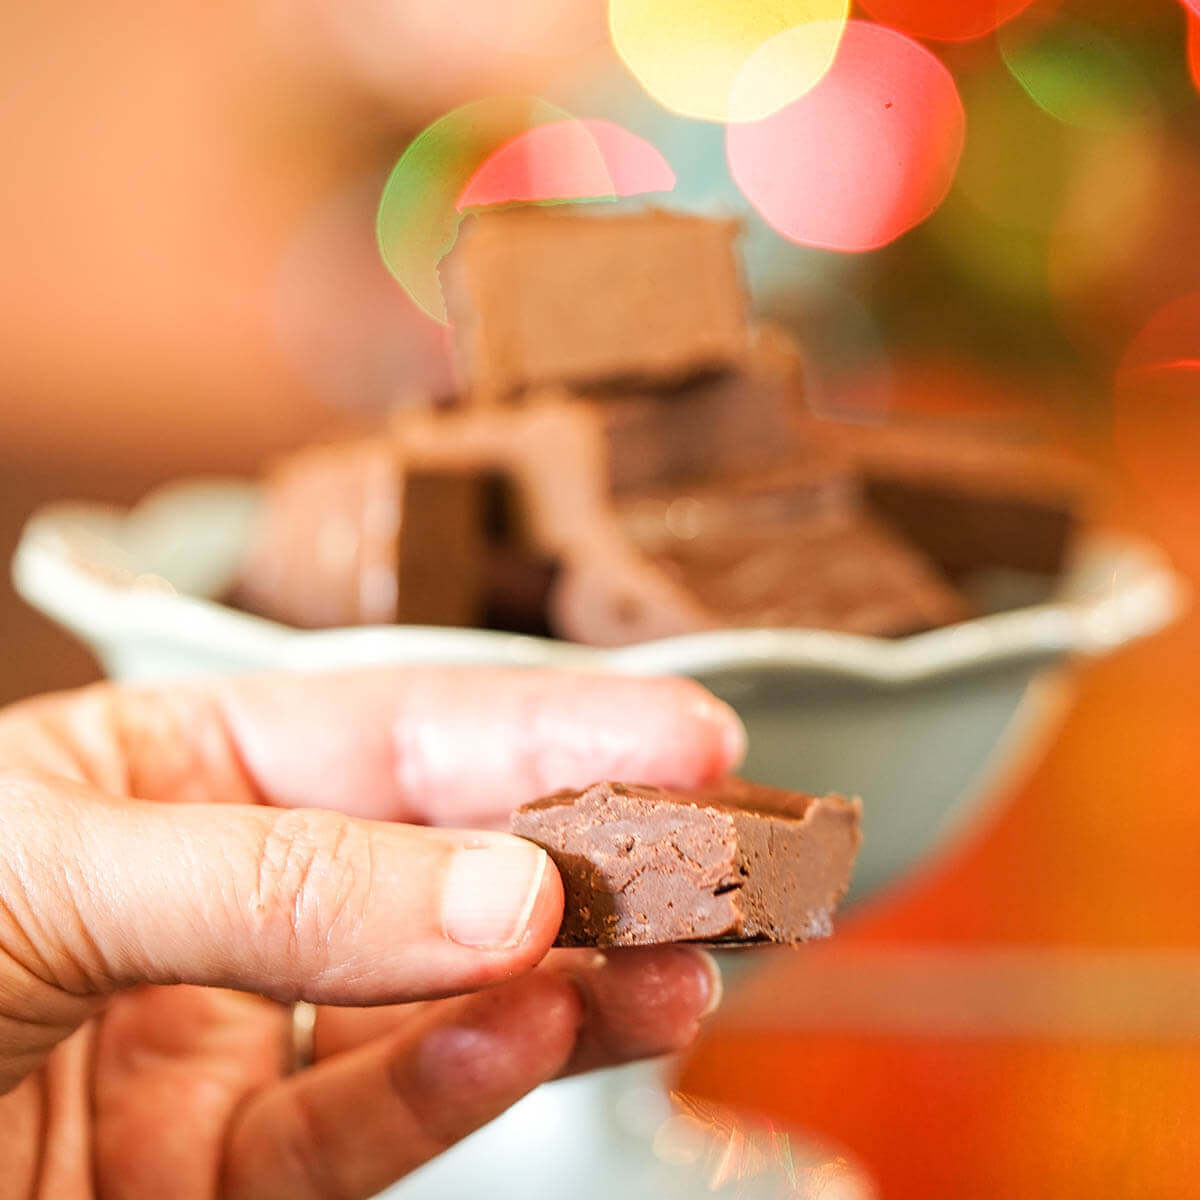 Fudge in green bowl with hand holding a piece - so chocolatey!